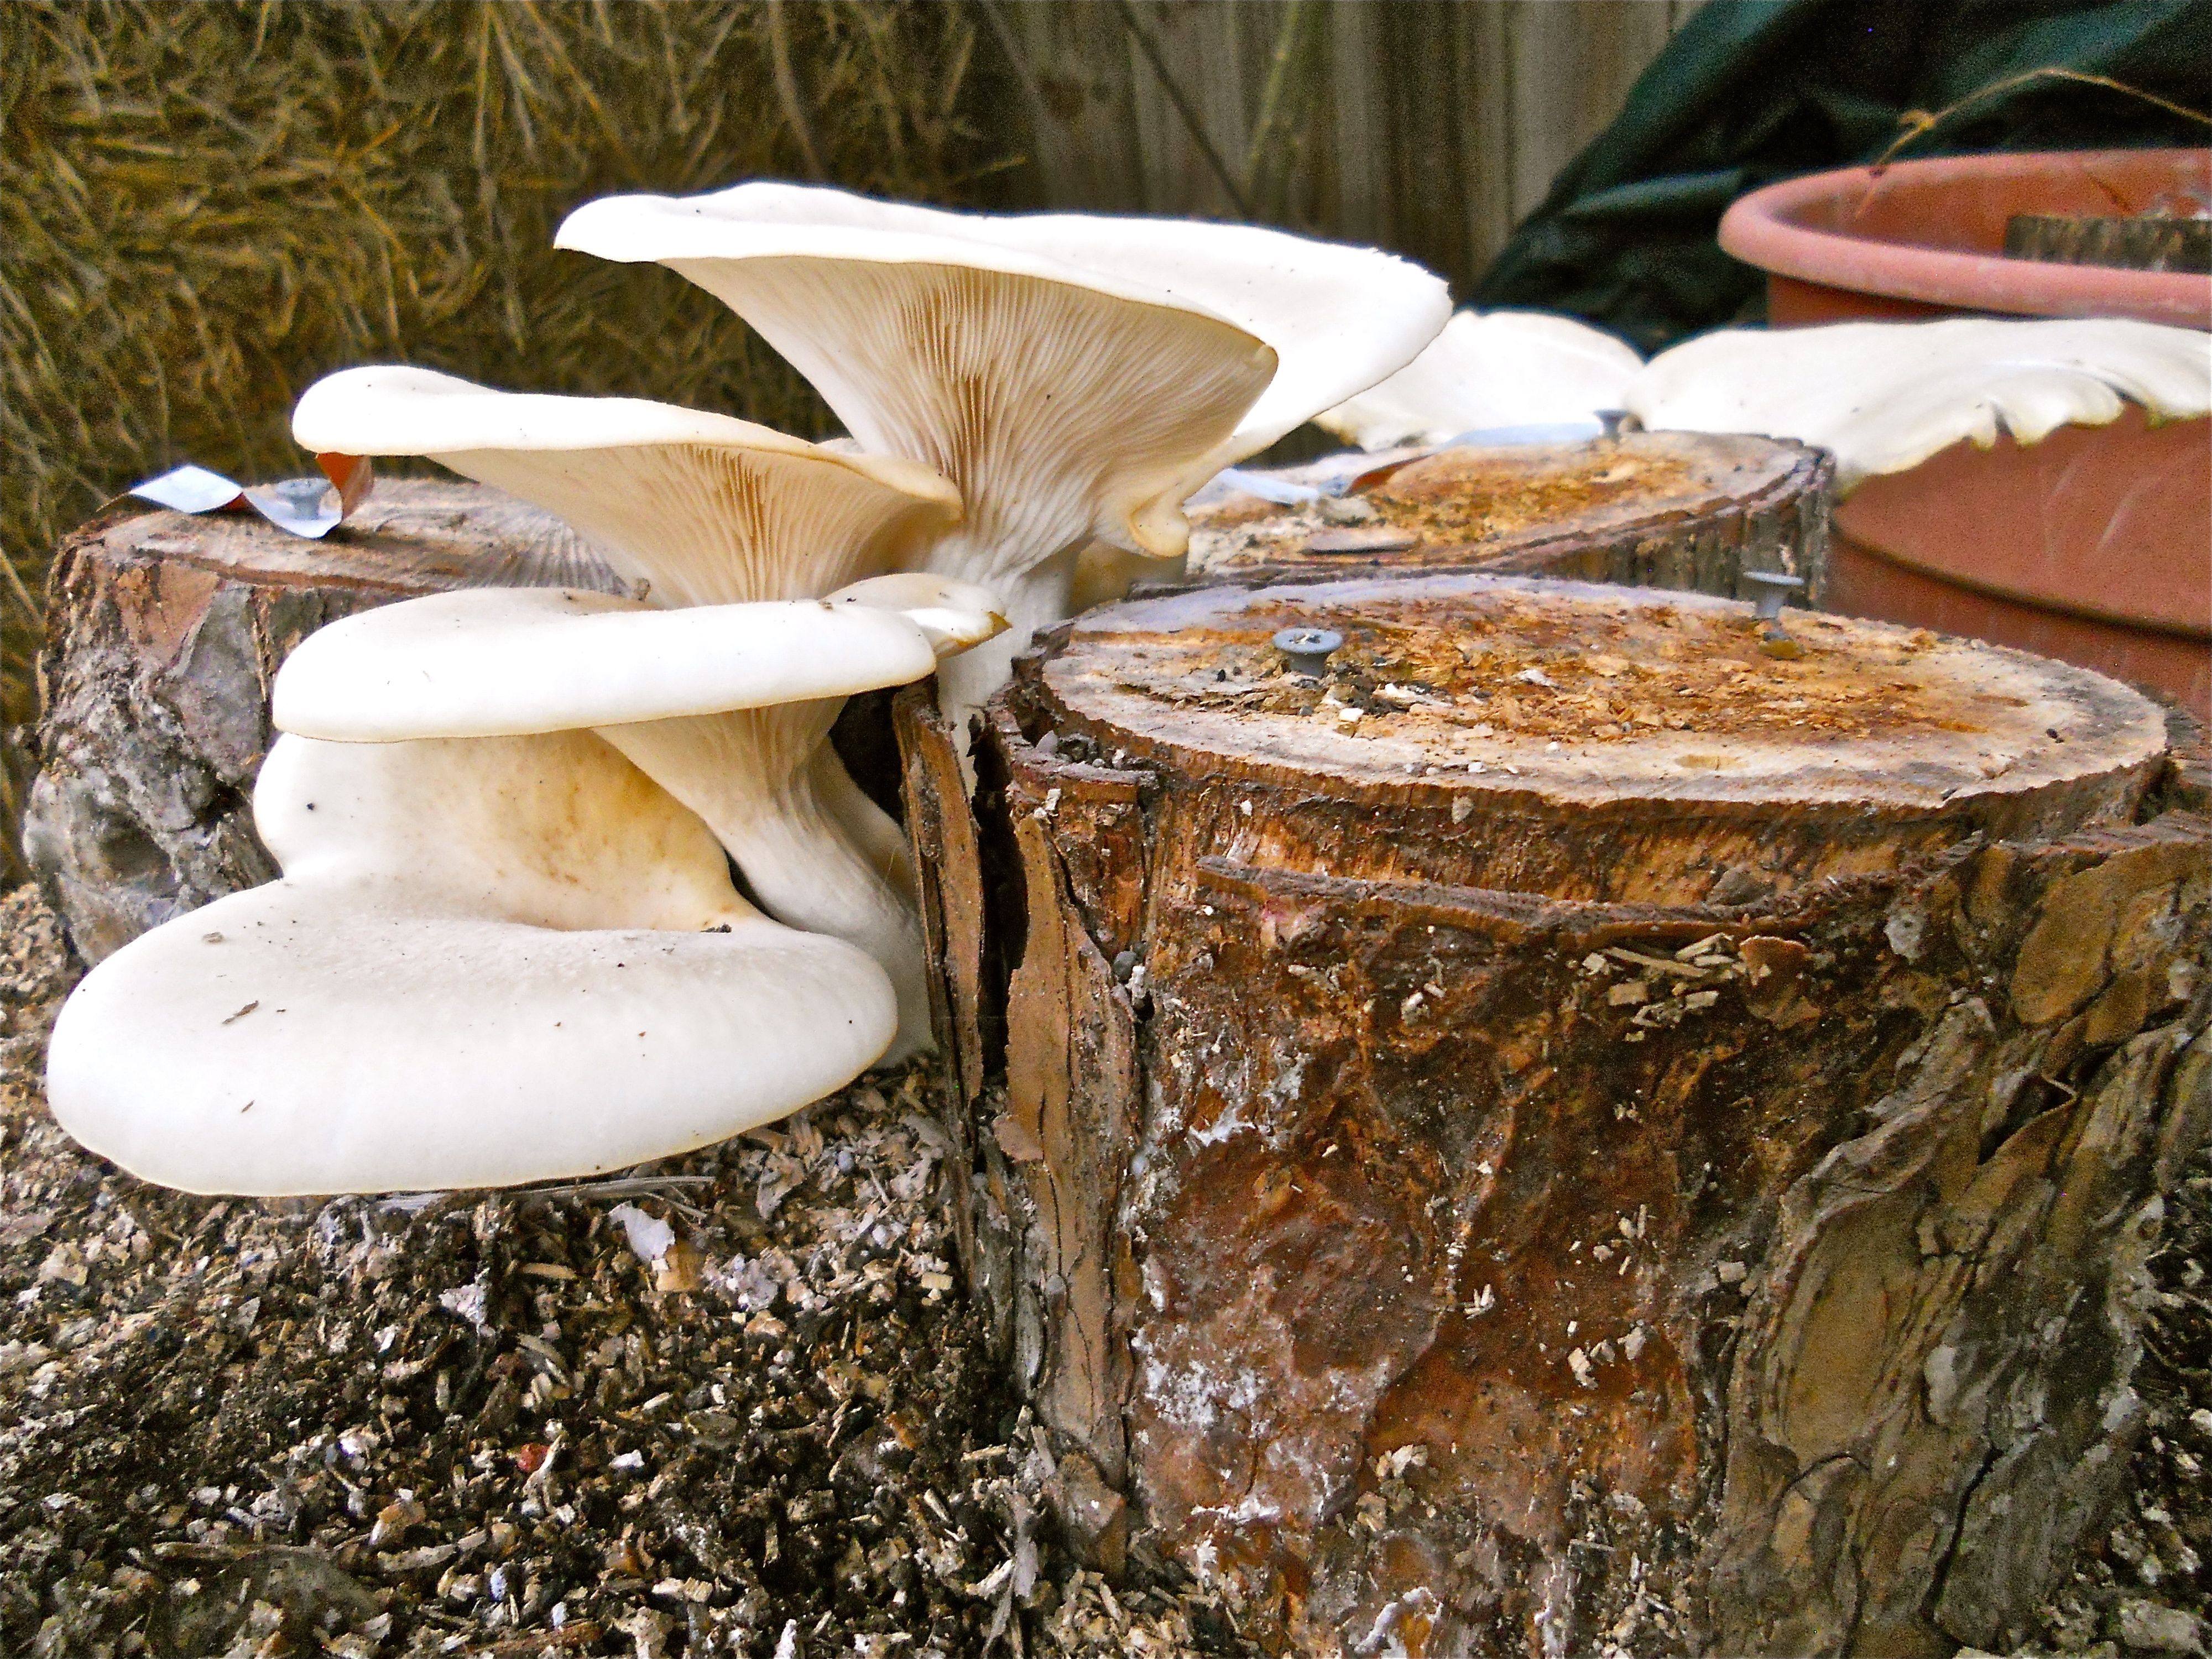 A cook 39 s favorite elm oyster mushrooms growing on tree stumps with 100th monkey mushroom log - Growing oyster mushrooms profit ...